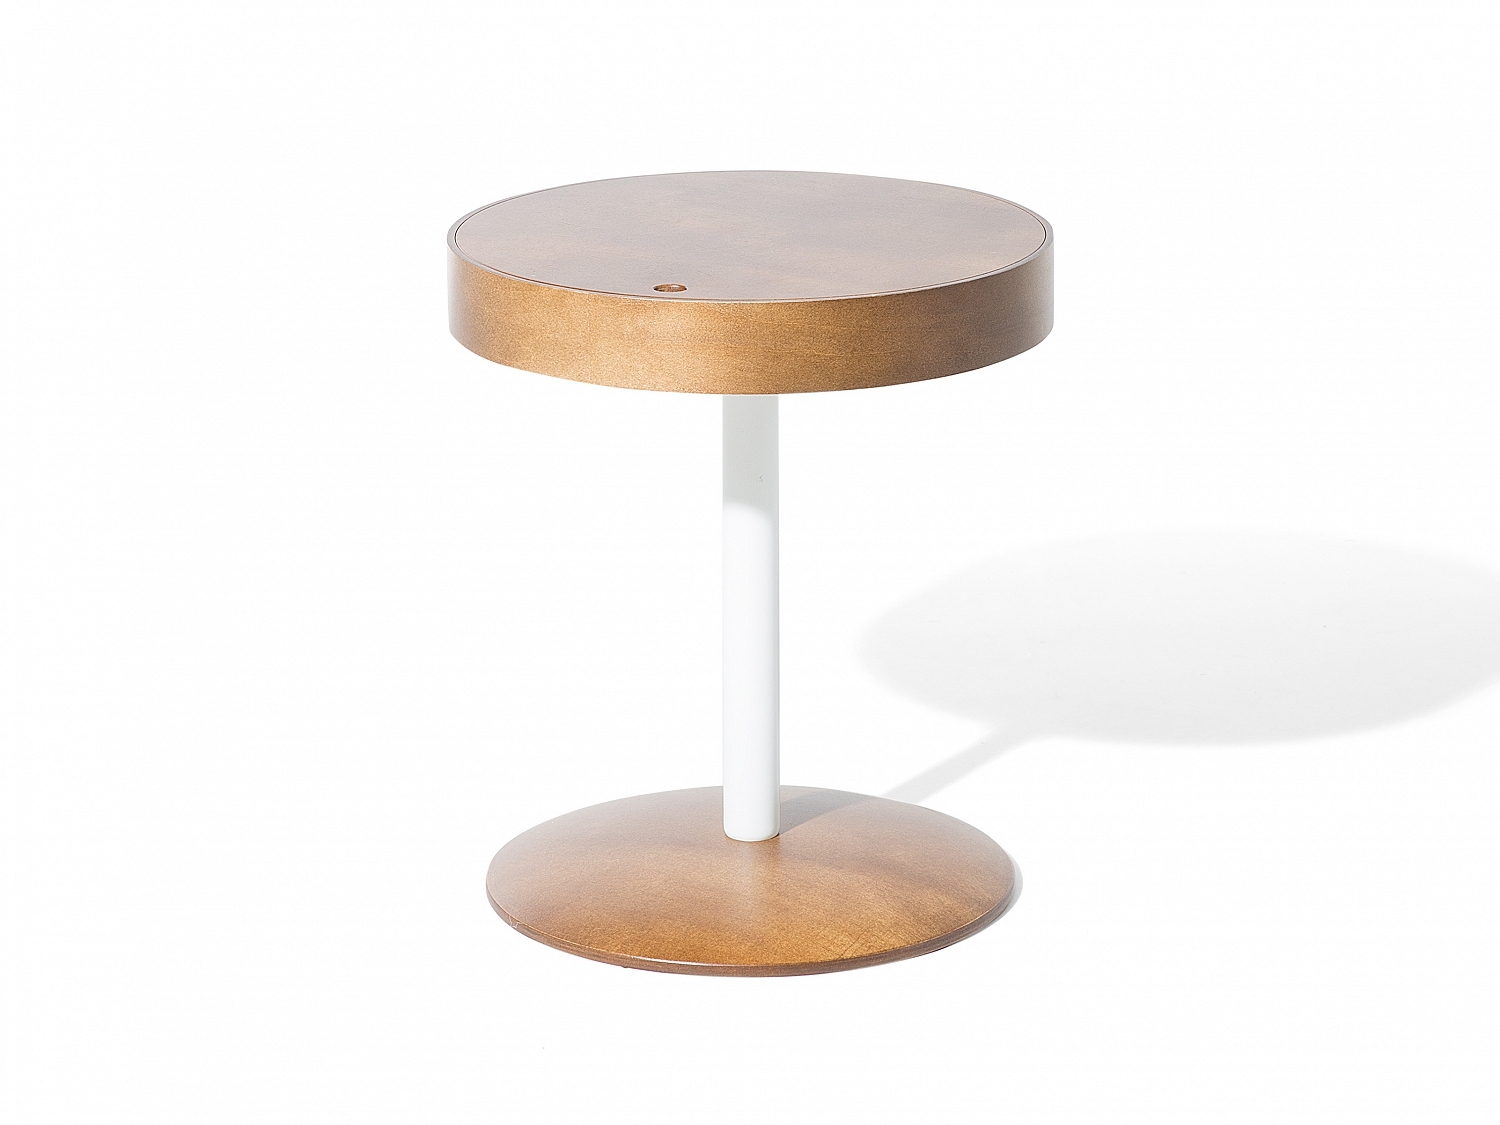 Table d appoint table basse ronde marron rangement - Table d appoint ronde ...